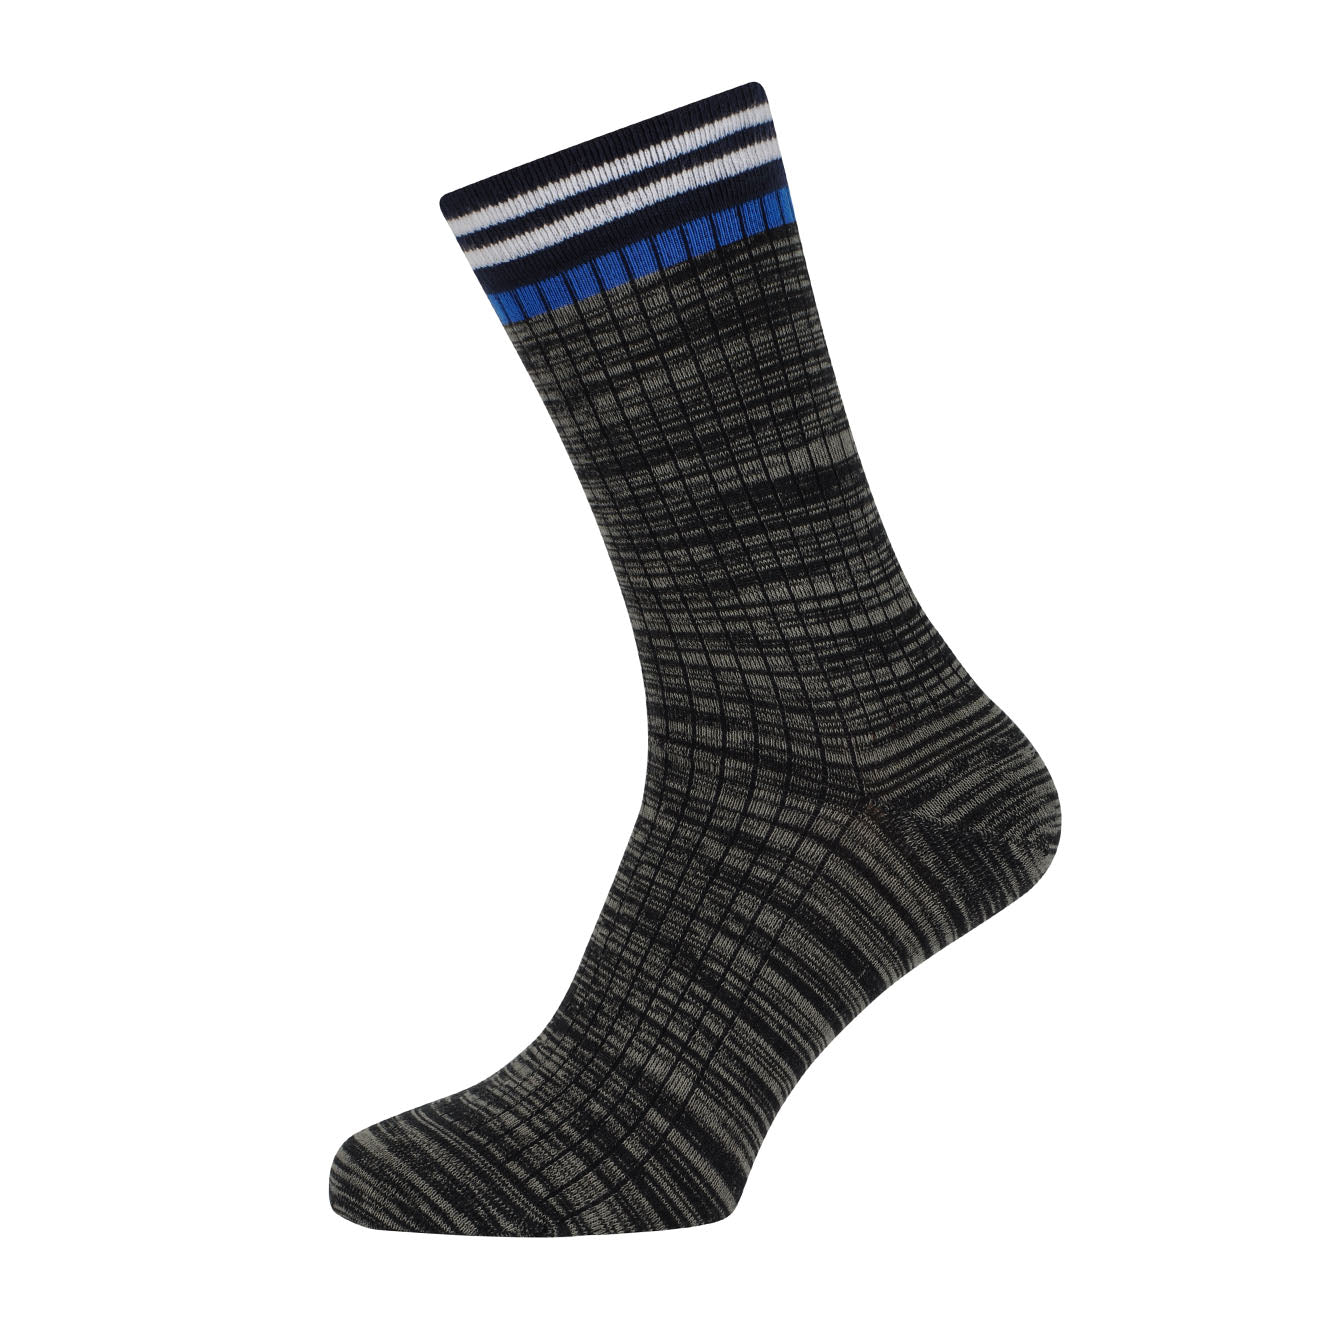 MP Crafted Garments Socks Macon Black Grey Blue